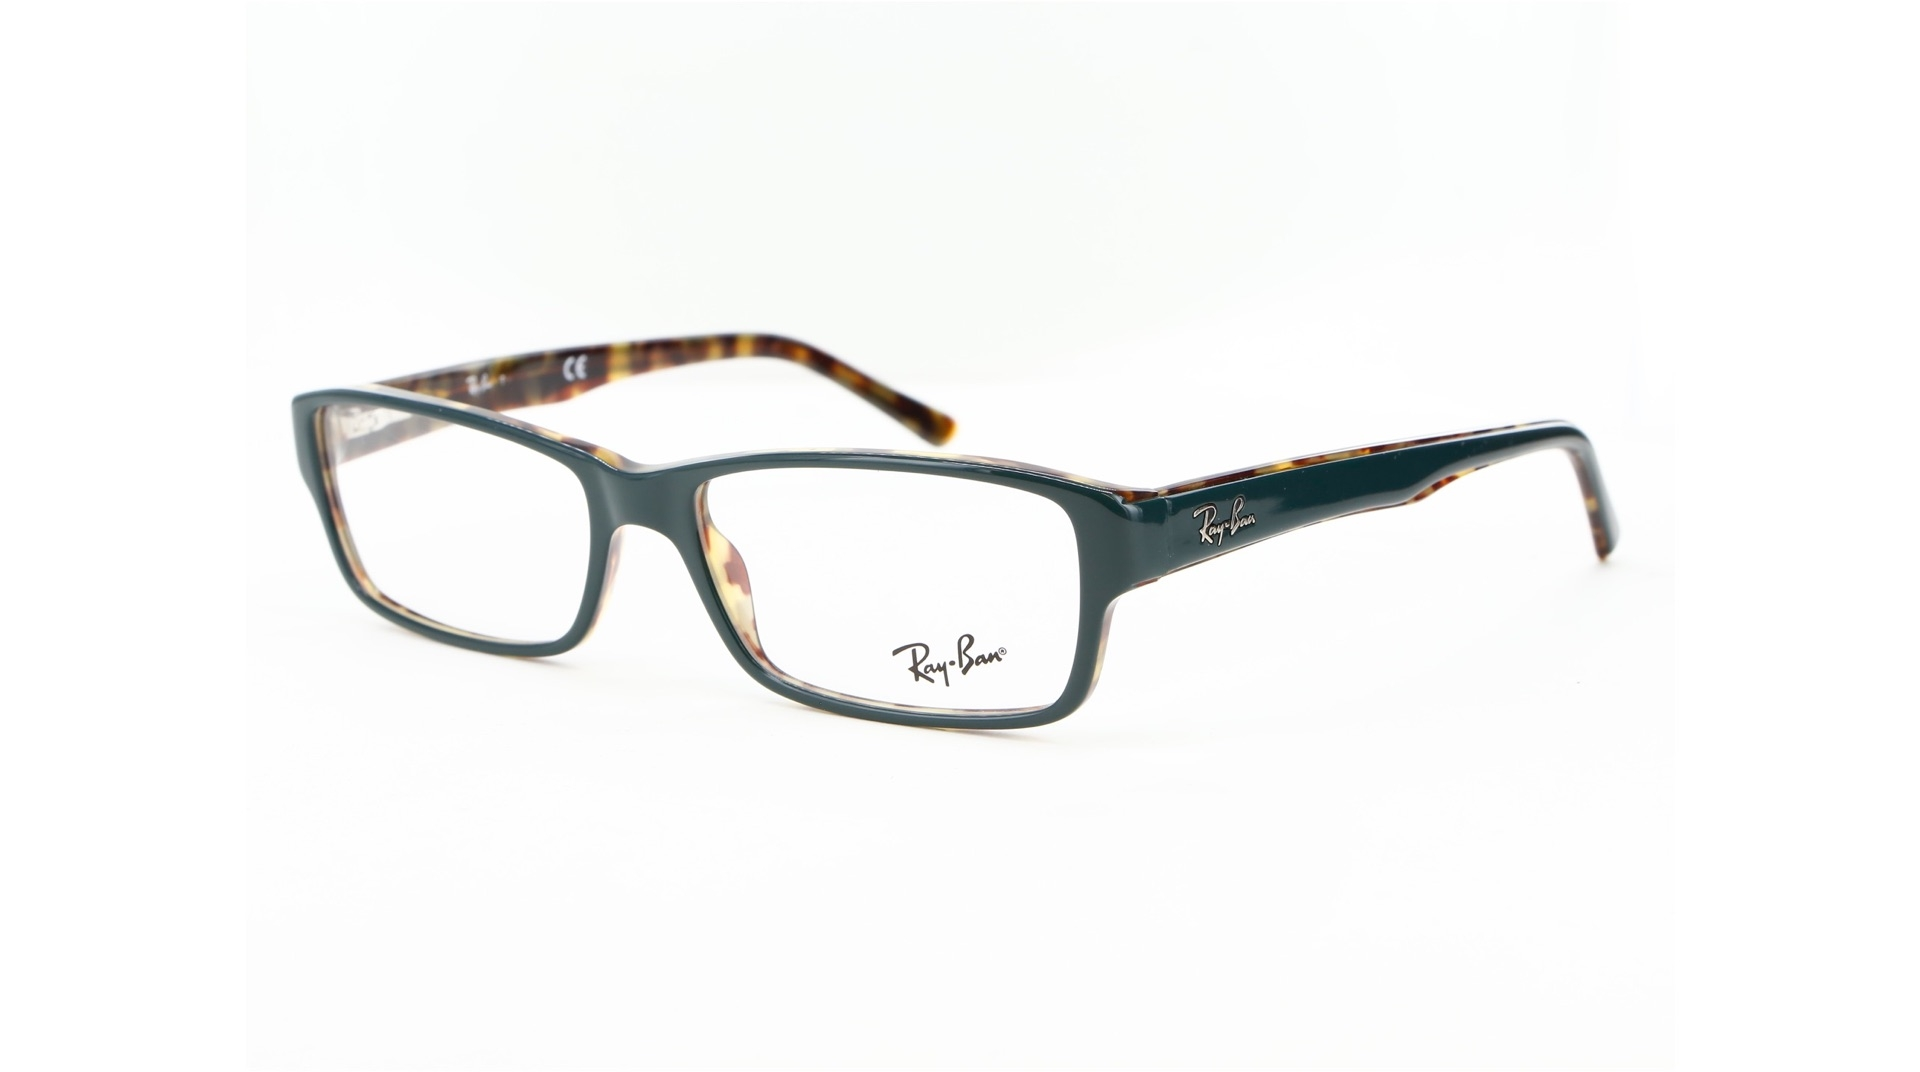 Ray-Ban - ref: 69402